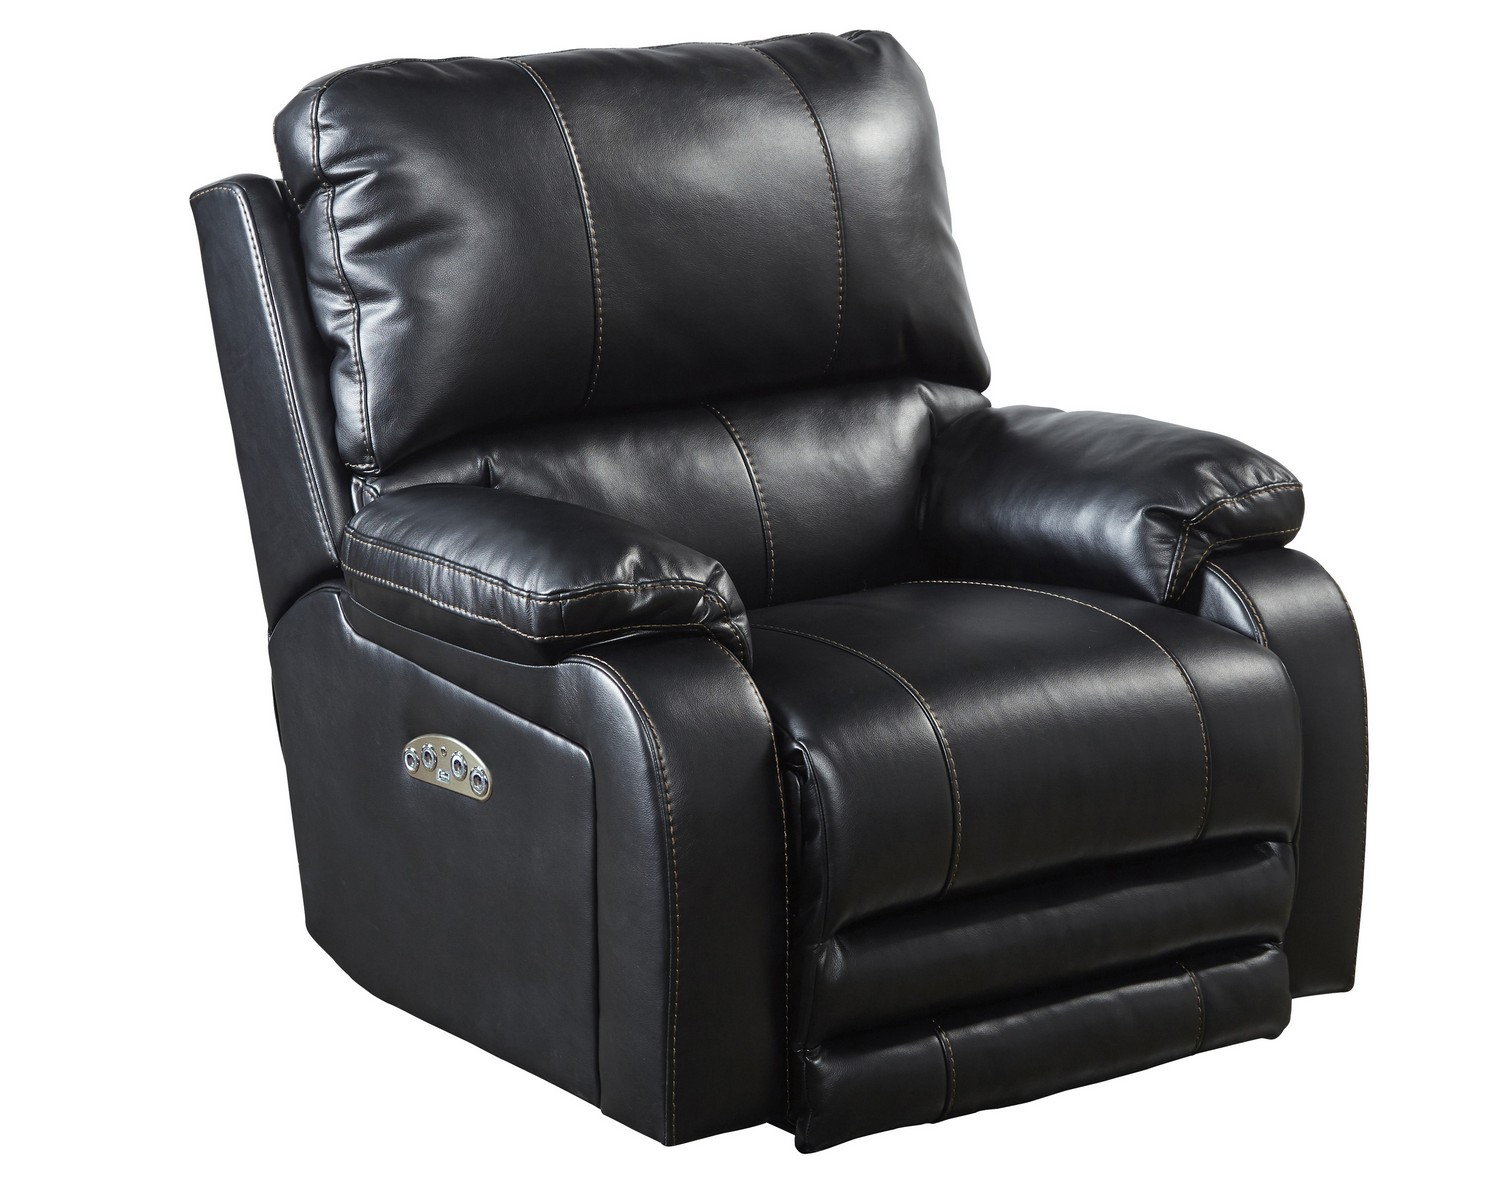 CatNapper Thornton Power Headrest Power Lay Flat Recliner - Black